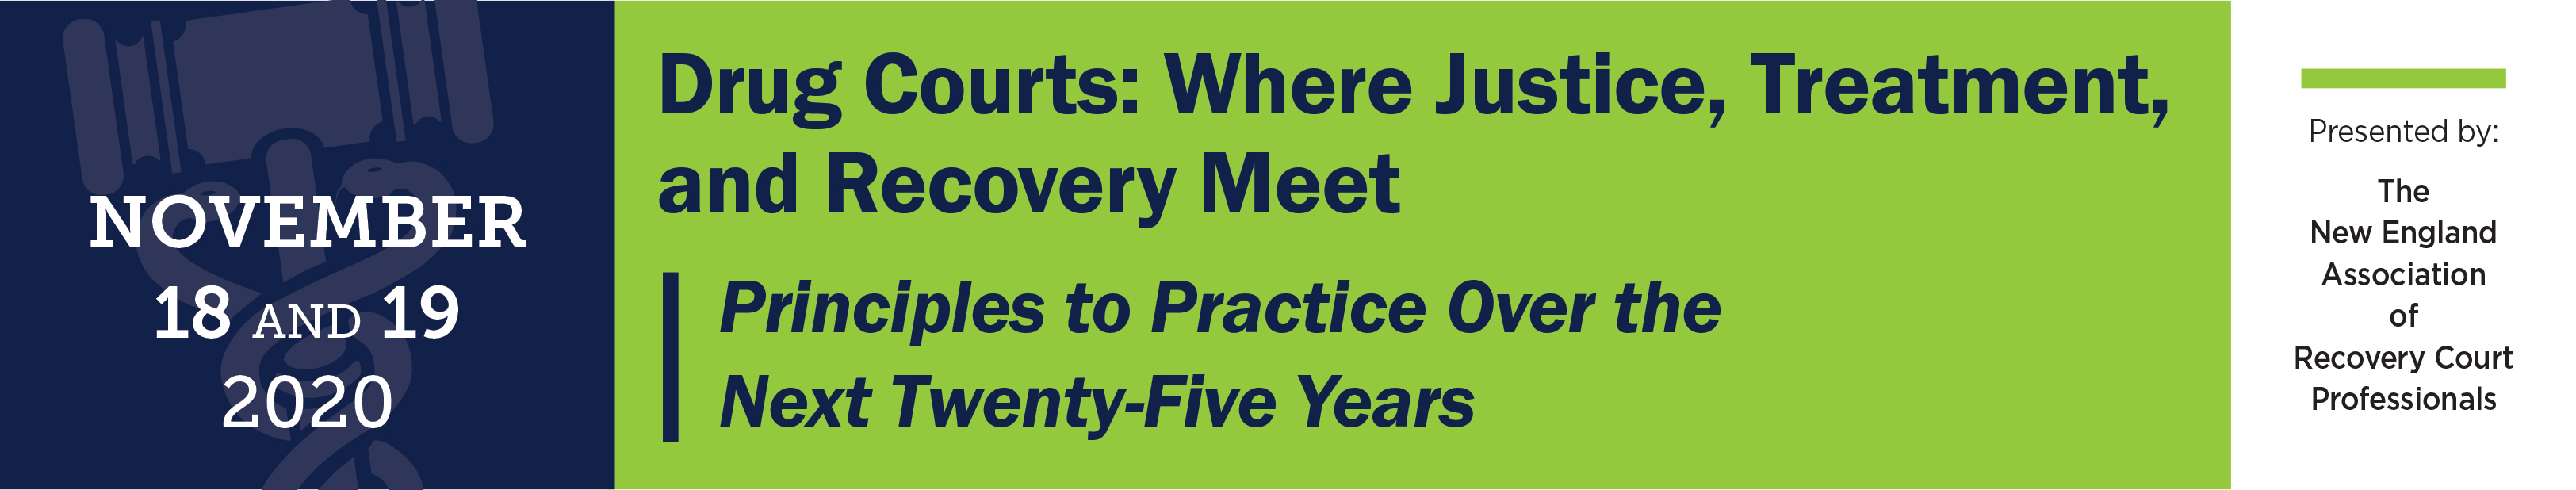 Drug Courts:  Where Justice, Treatment and Recovery Meet - Principles to Practice Over the Next Twenty-Five Years